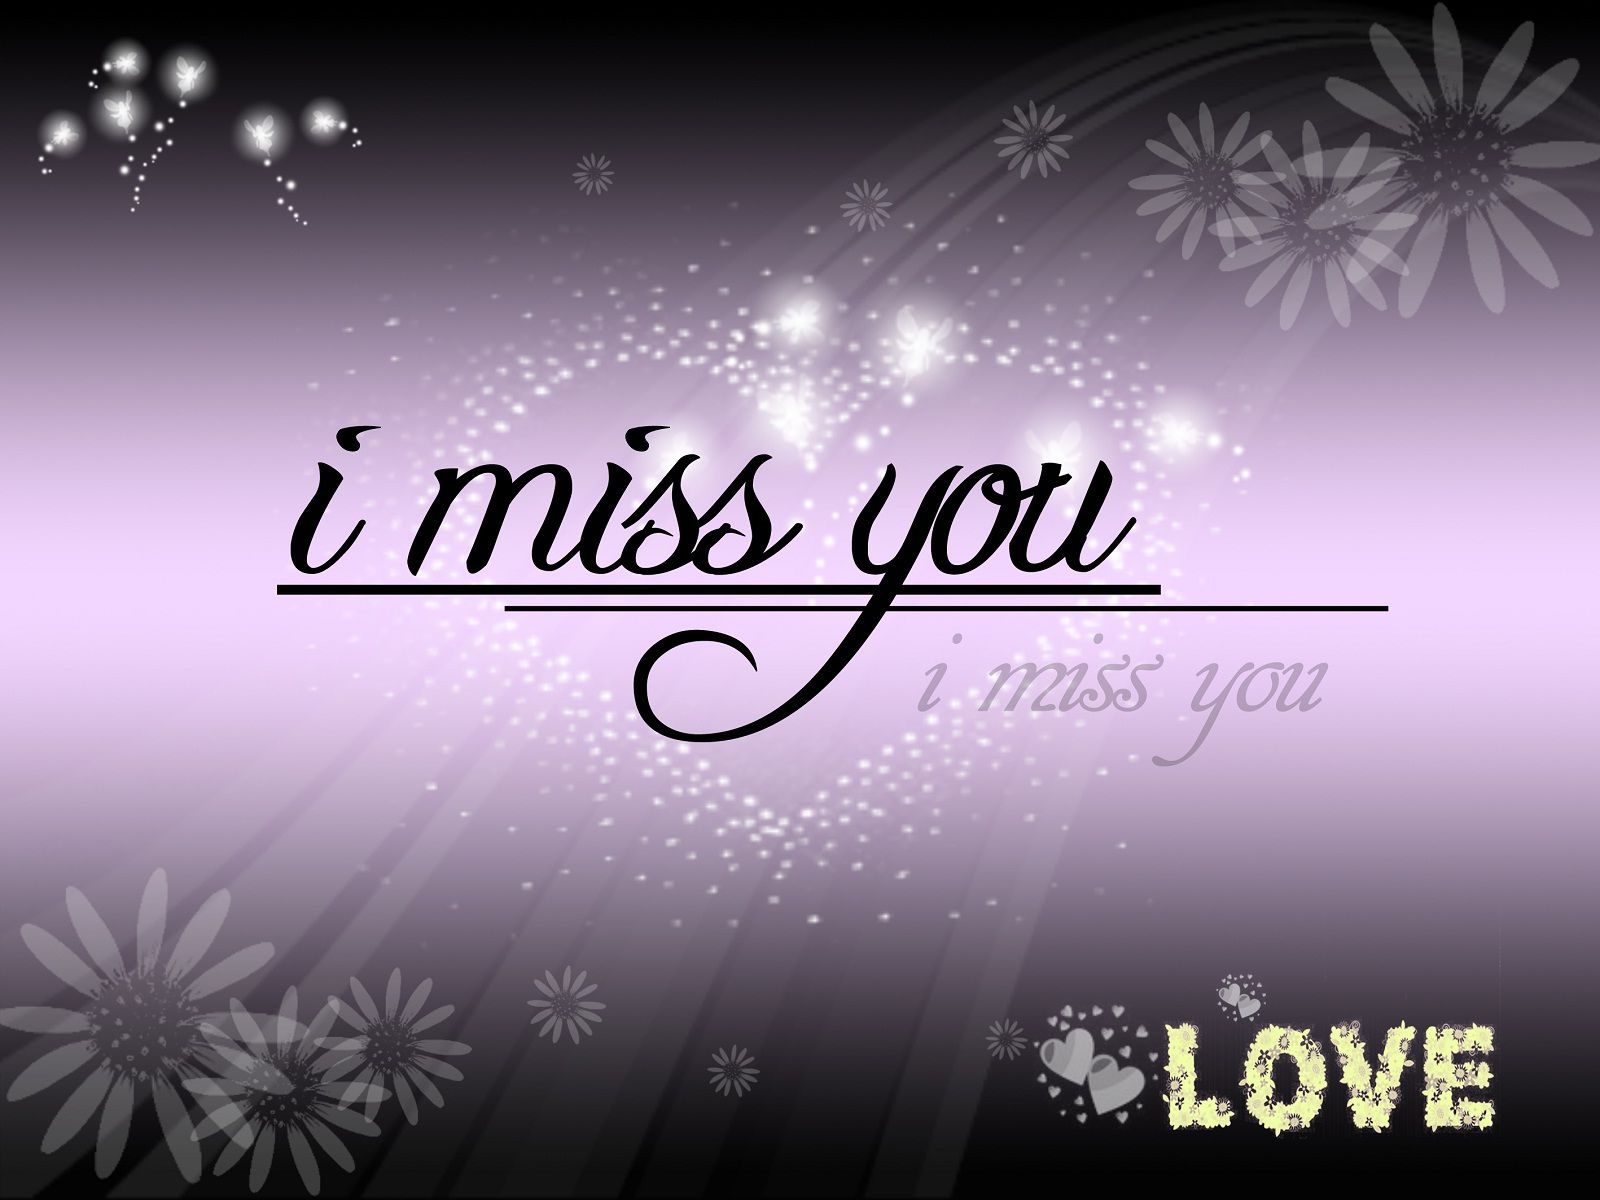 Wallpaper download i miss you - I Miss You Wallpaper Collection For Free Download